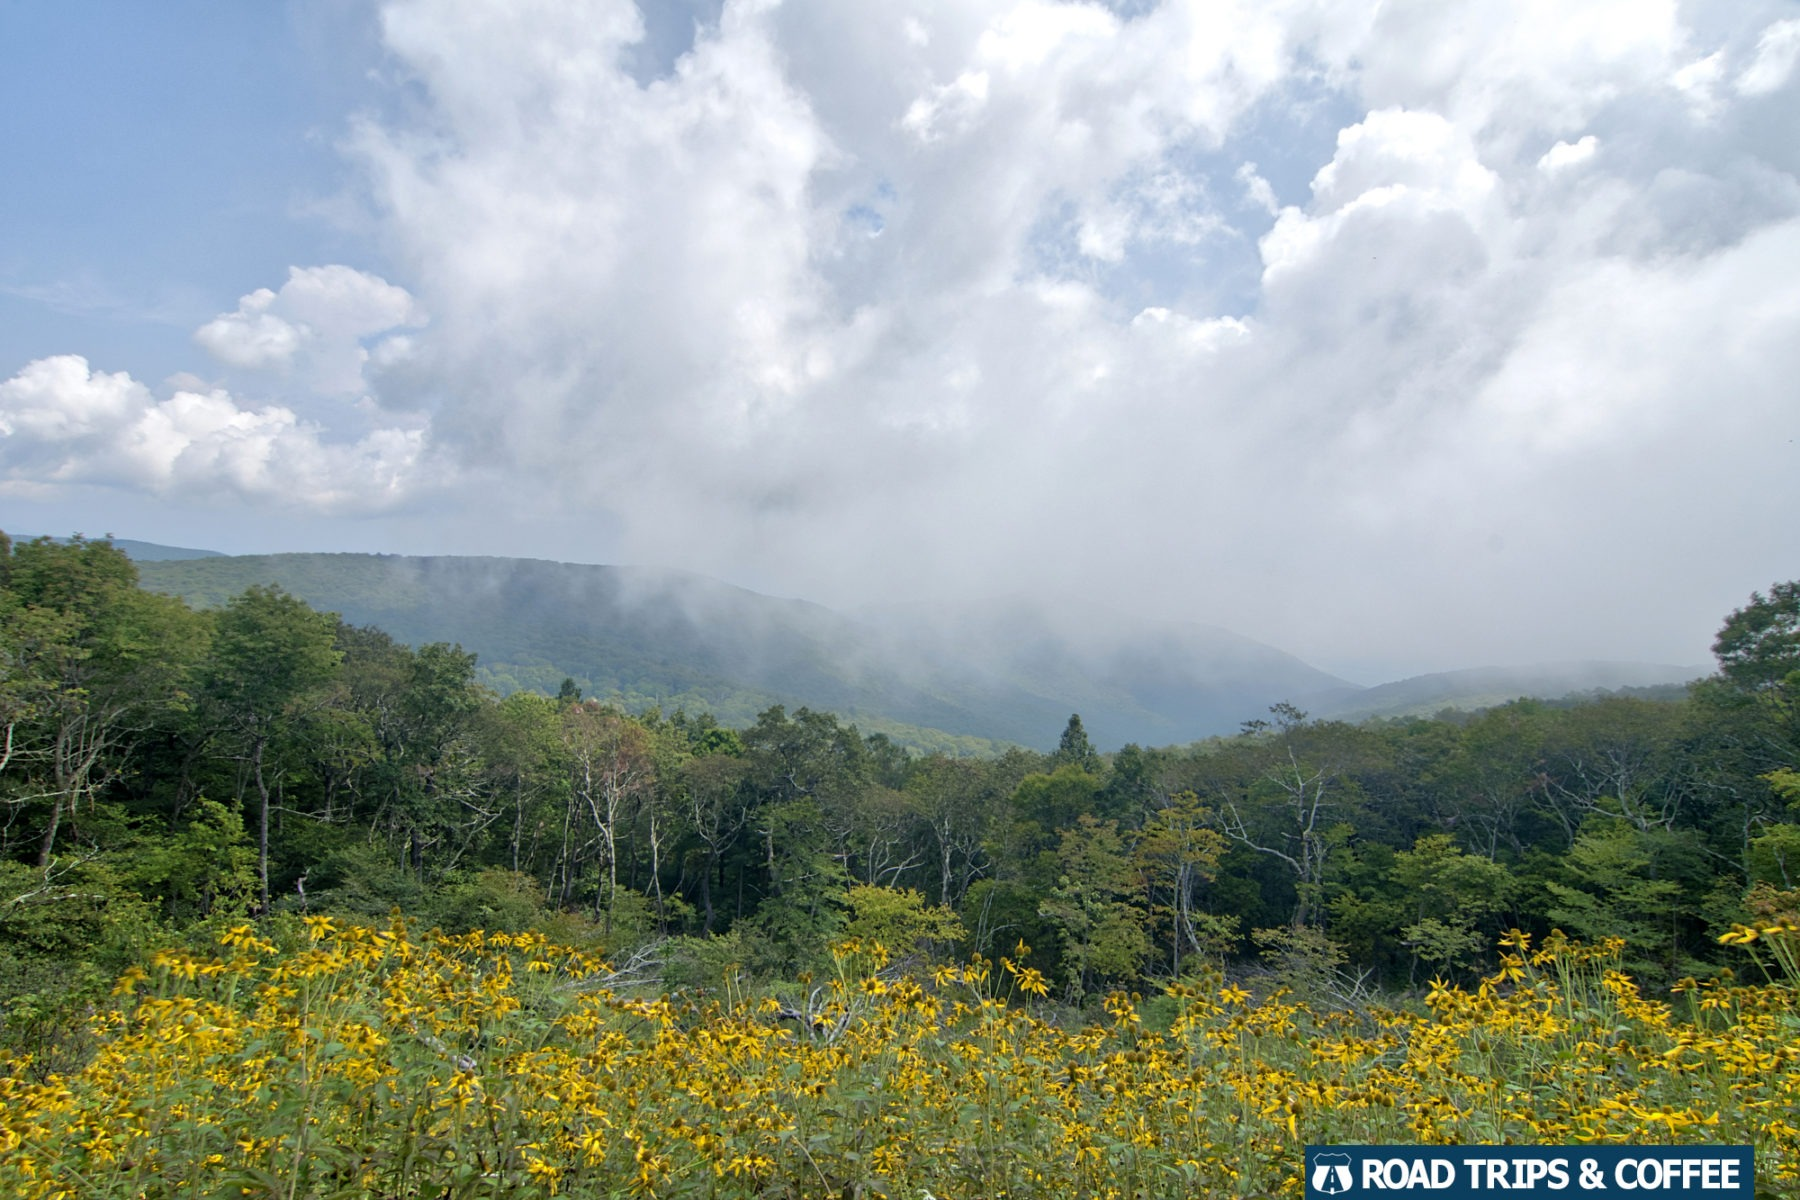 Clouds obscure the view beyond a field of blooming spring flowers at Apple Orchard Mountain Overlook on the Blue Ridge Parkway in Virginia